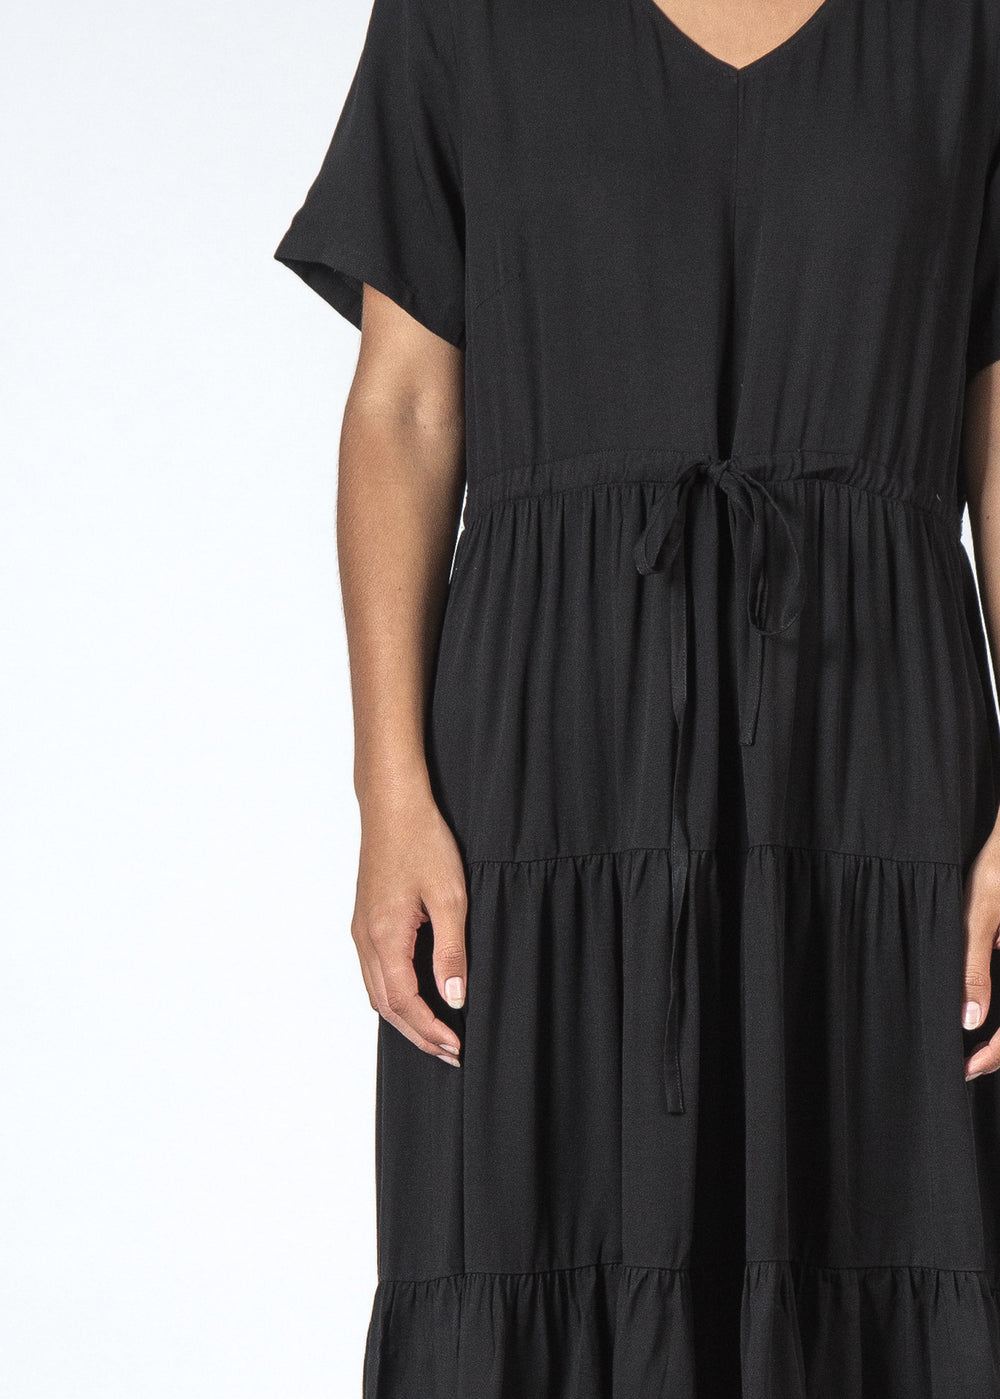 THE GARDEN DRESS BLACK